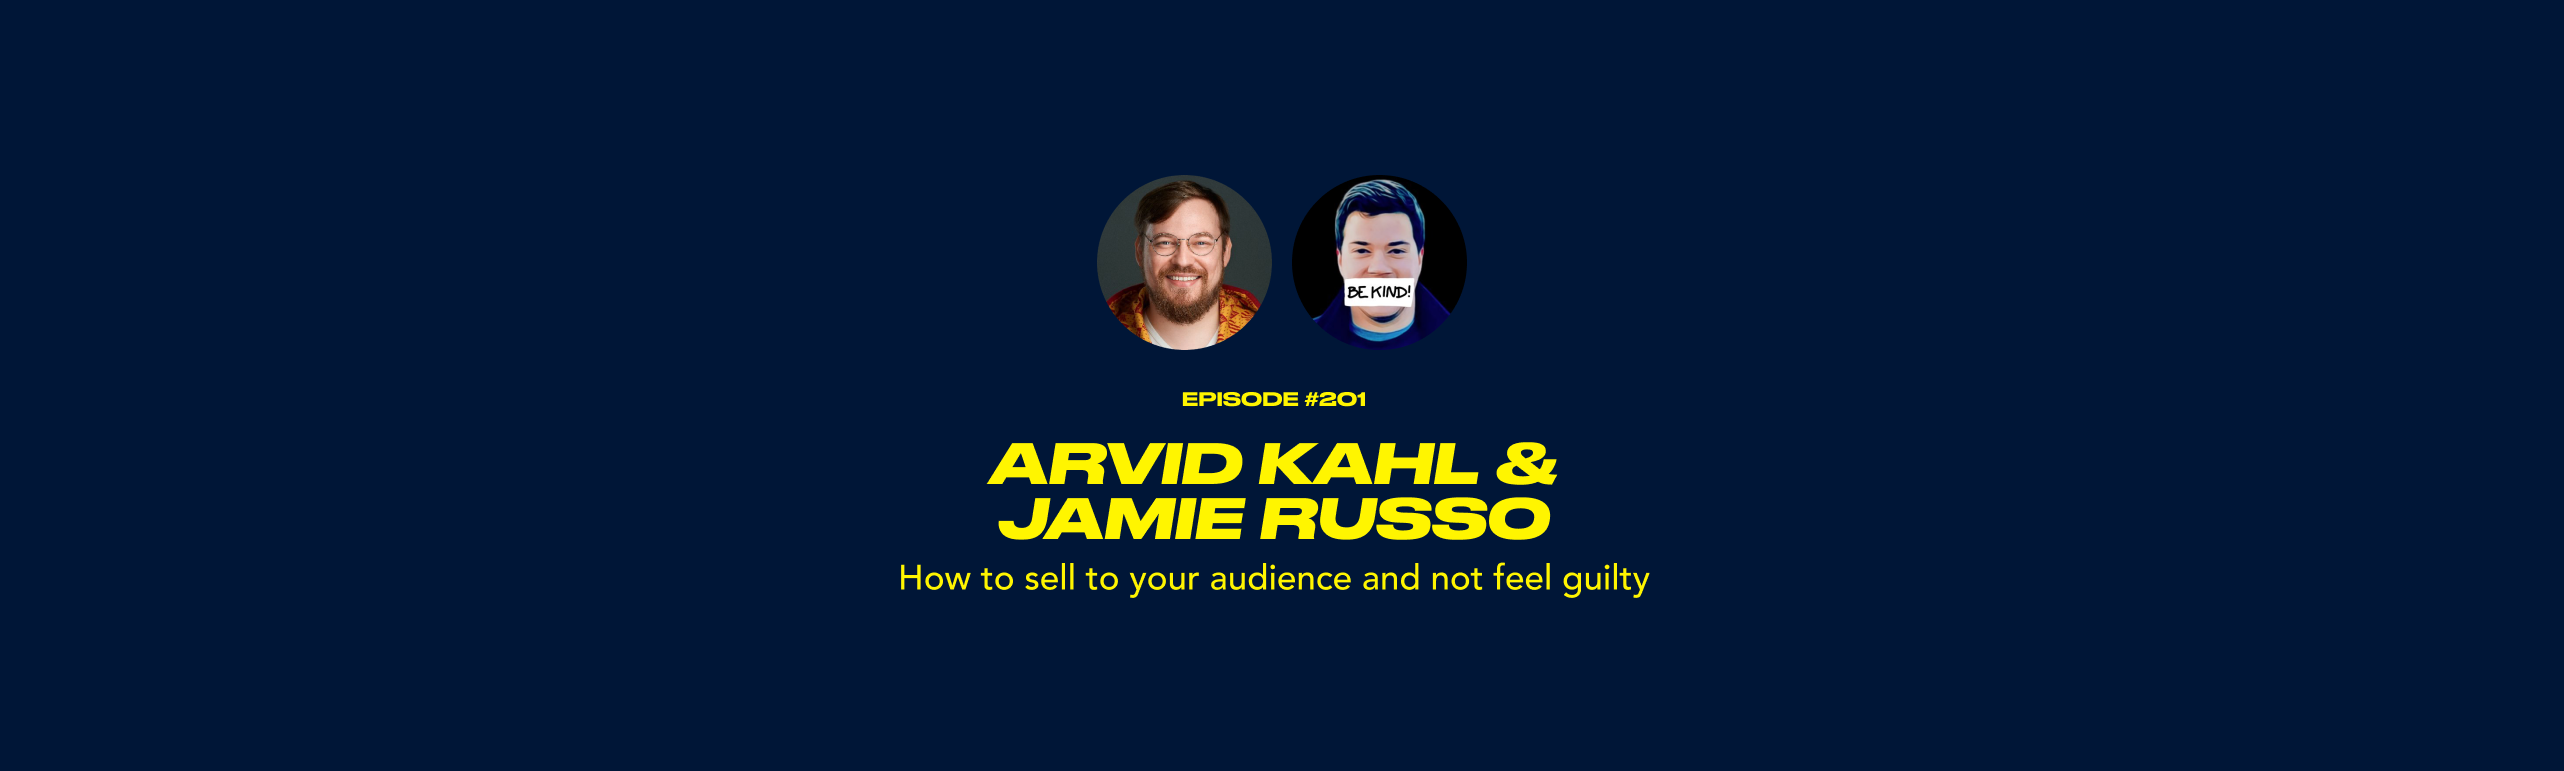 Arvid Kahl & Jamie Russo - How to sell to your audience and not feel guilty